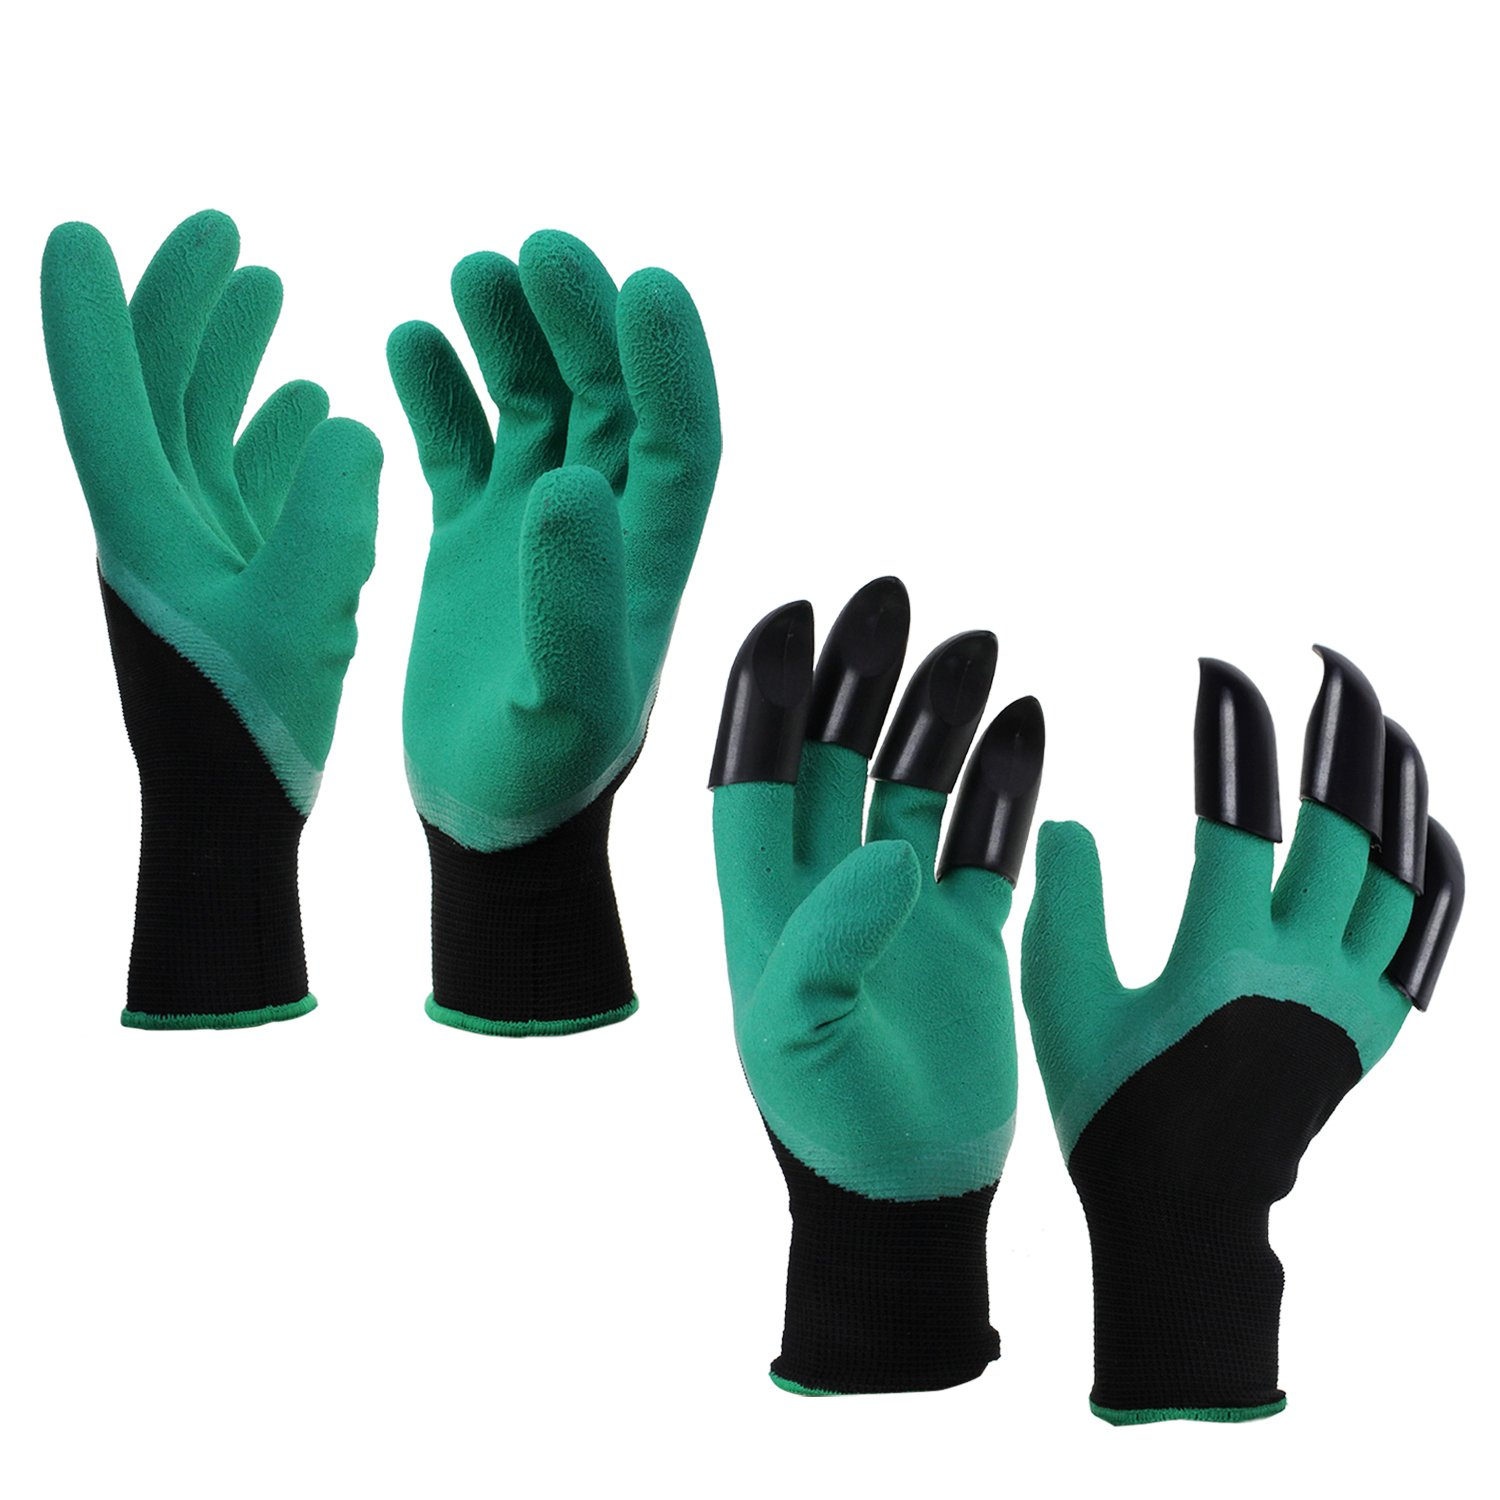 KEESIN Garden Gloves Protective Gardening Work Gloves with Sturdy Claws for Digging Planting 2 Pairs